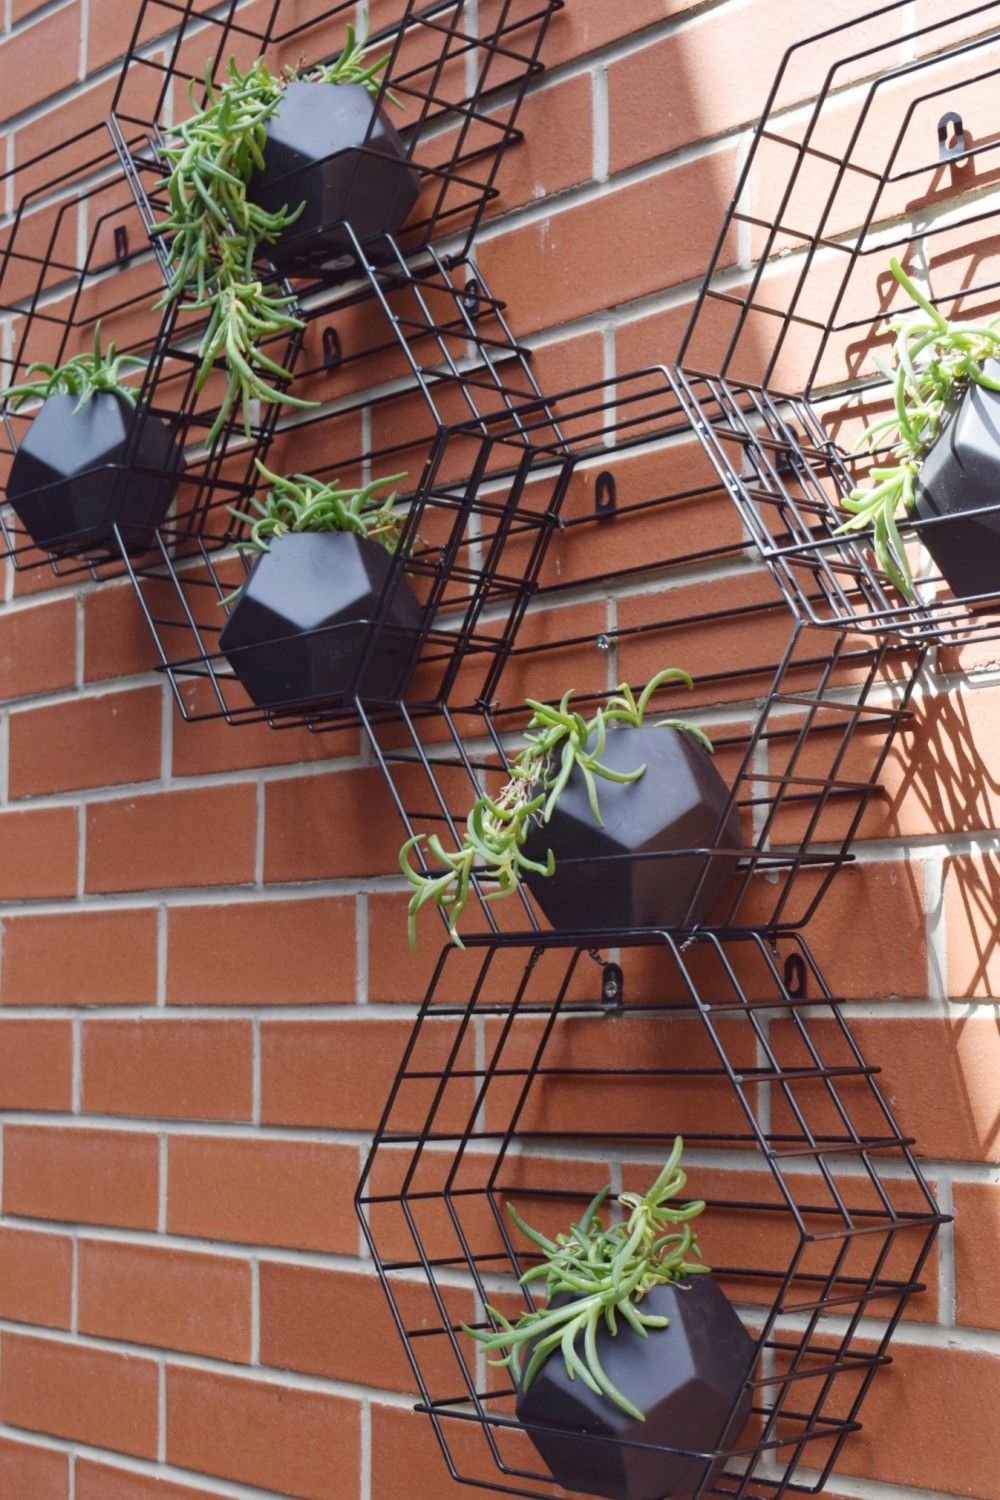 Kmart hack beehive hexagon vertical garden